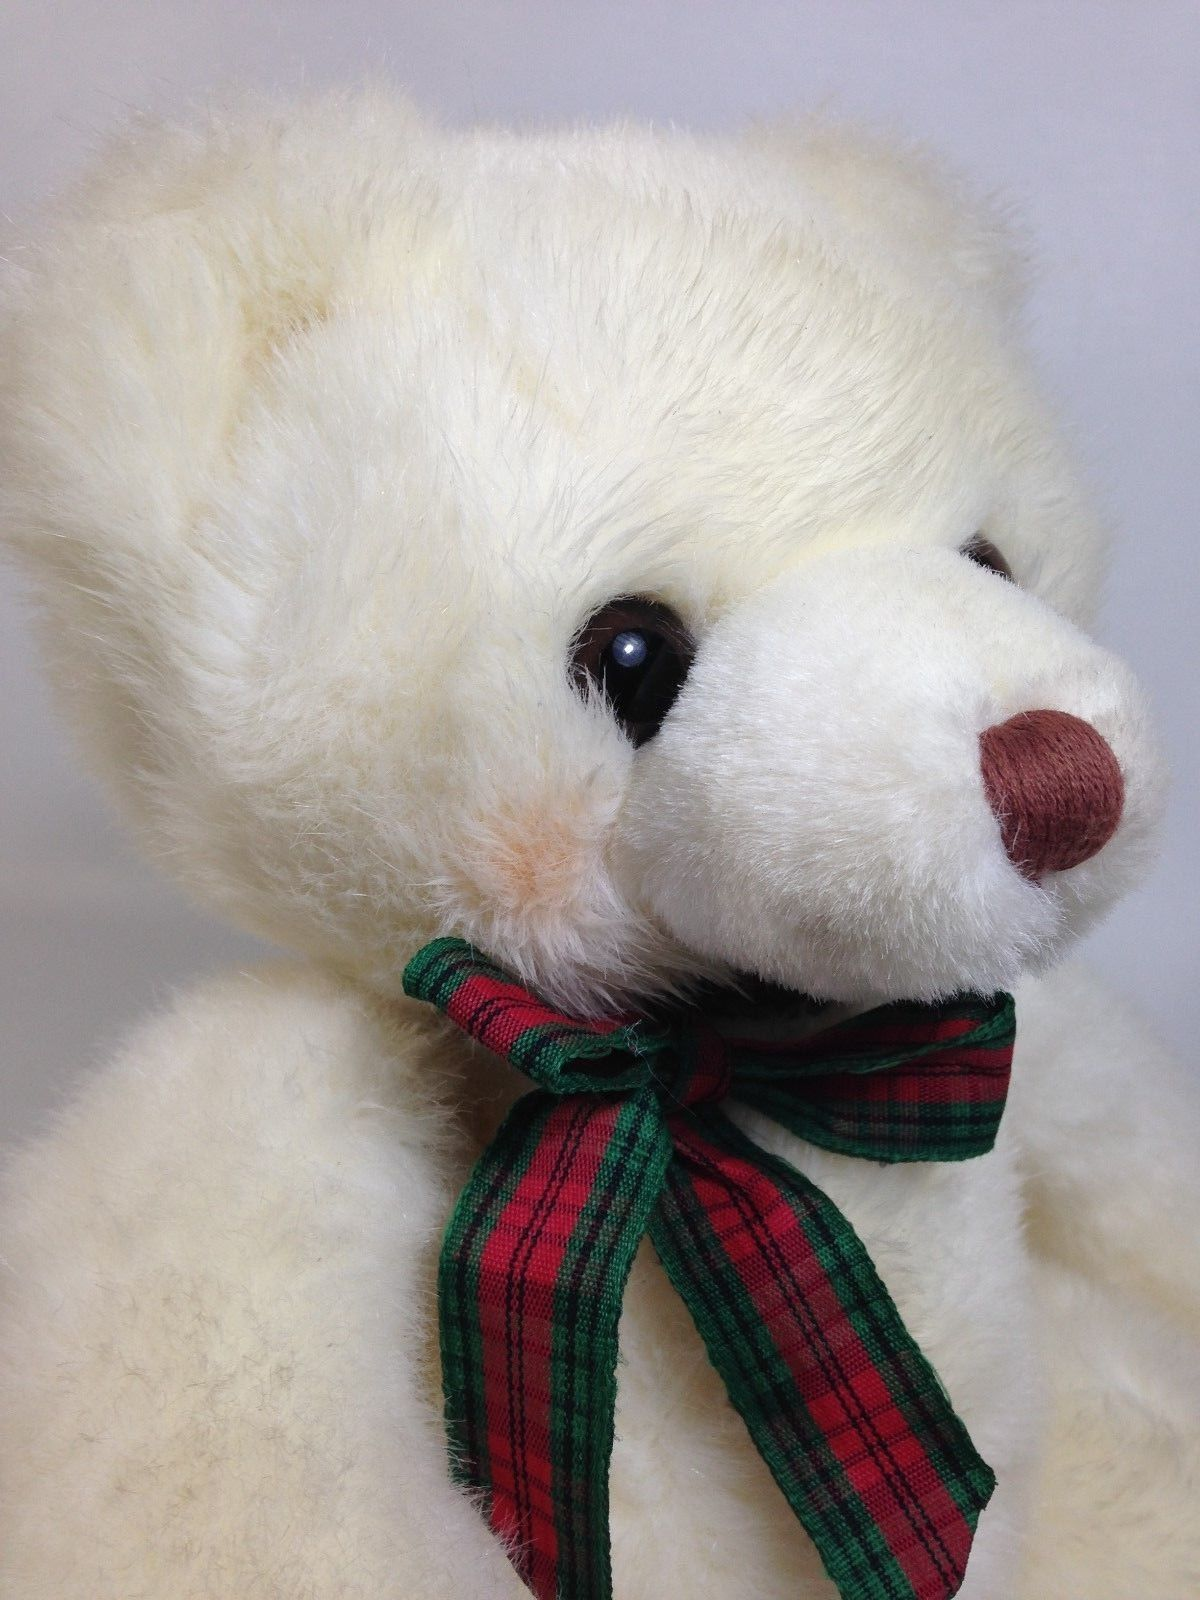 Primary image for Russ SNOWTOP Teddy Bear Plush Rosey Cheeks Korean K-02 White Stuffed Animal 9""